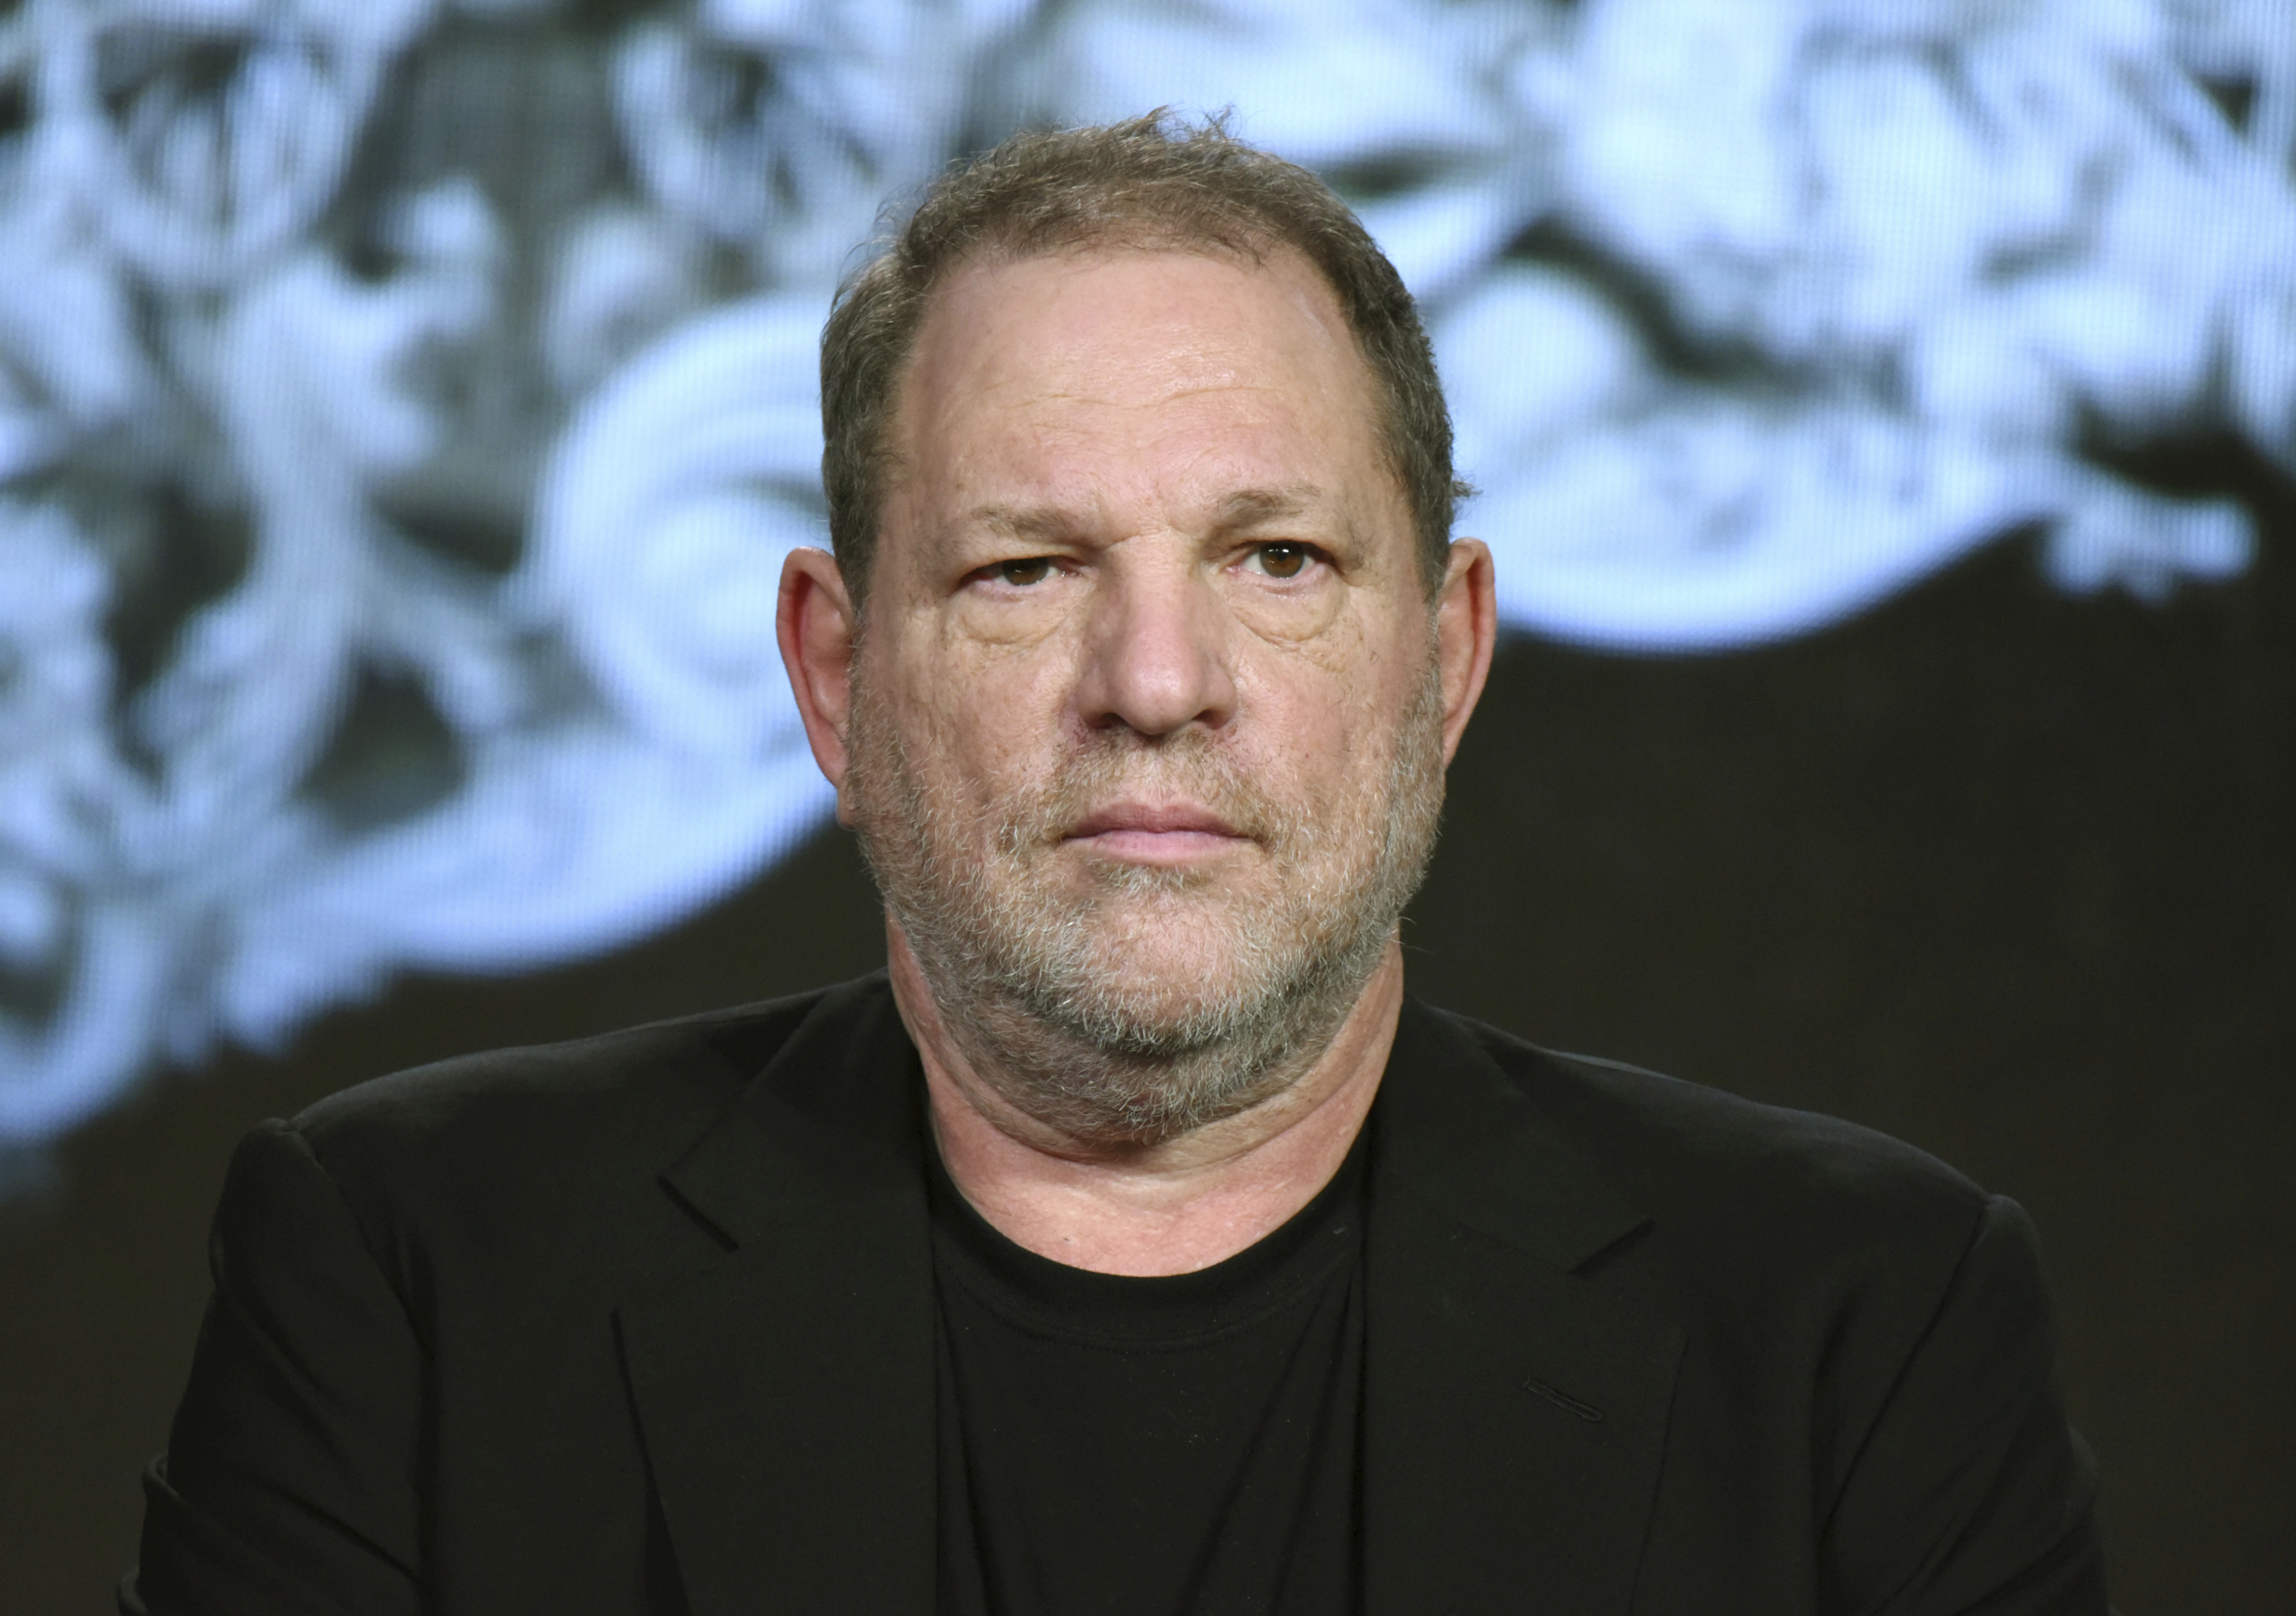 "CORRECTS FROM SUSPENDED TO INDEFINITE LEAVE - FILE - In this Jan. 6, 2016 file photo, producer Harvey Weinstein participates in the ""War and Peace"" panel at the A&E 2016 Winter TCA in Pasadena, Calif. Weinstein is on indefinite leave from his film company pending an internal investigation into sexual harassment claims leveled against the Oscar winner. The decision was announced by The Weinstein Co.'s board of directors. (Photo by Richard Shotwell/Invision/AP, File)"